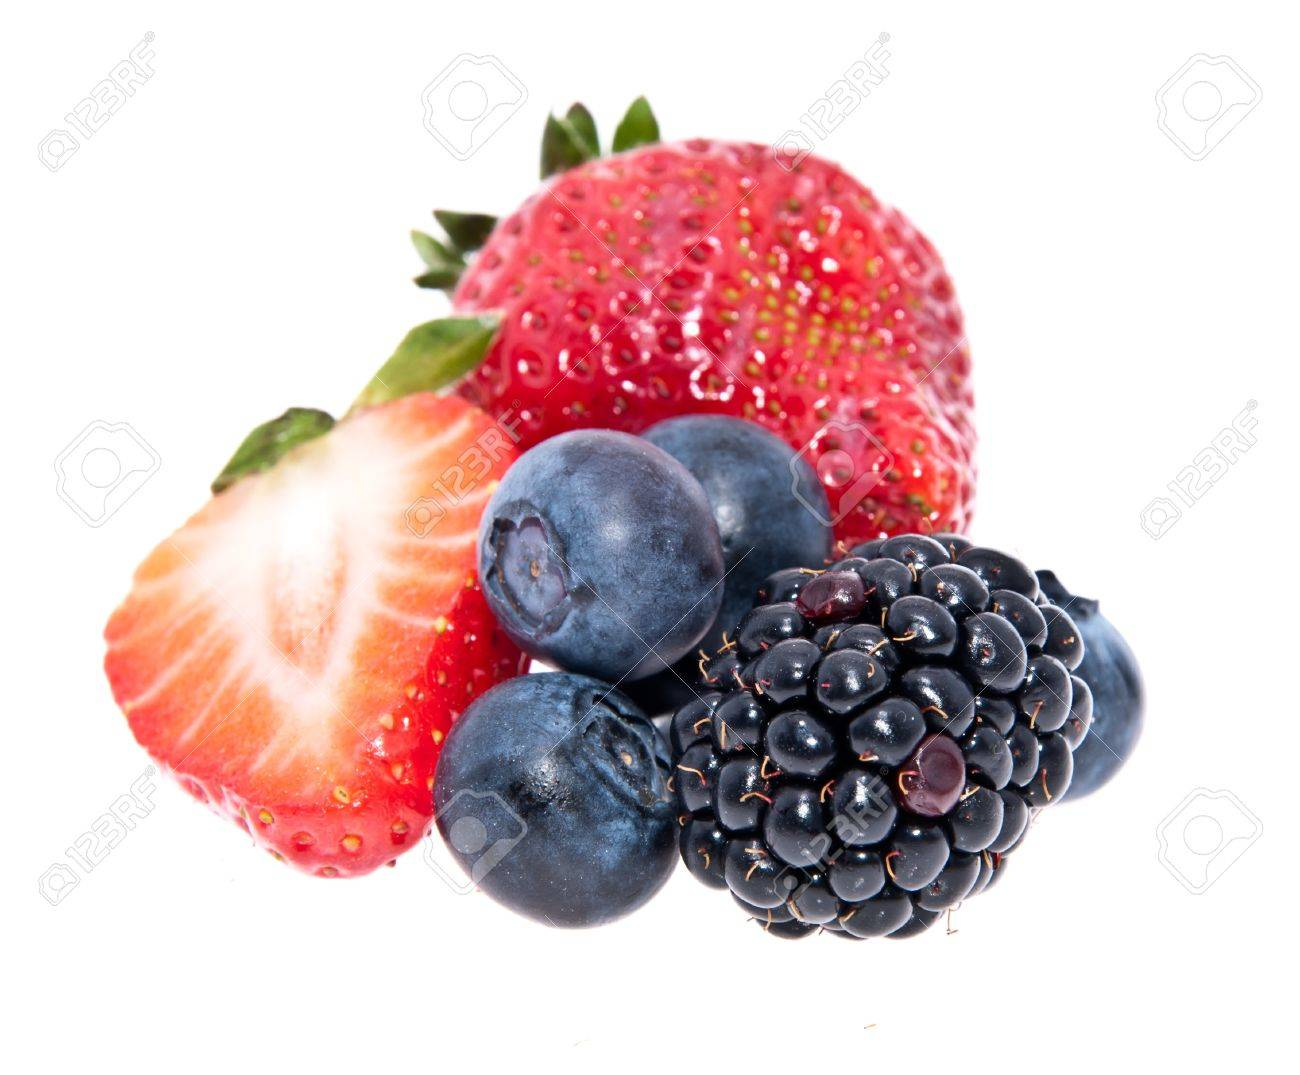 Heap of mixed berries isolated on white background Stock Photo - 13699382